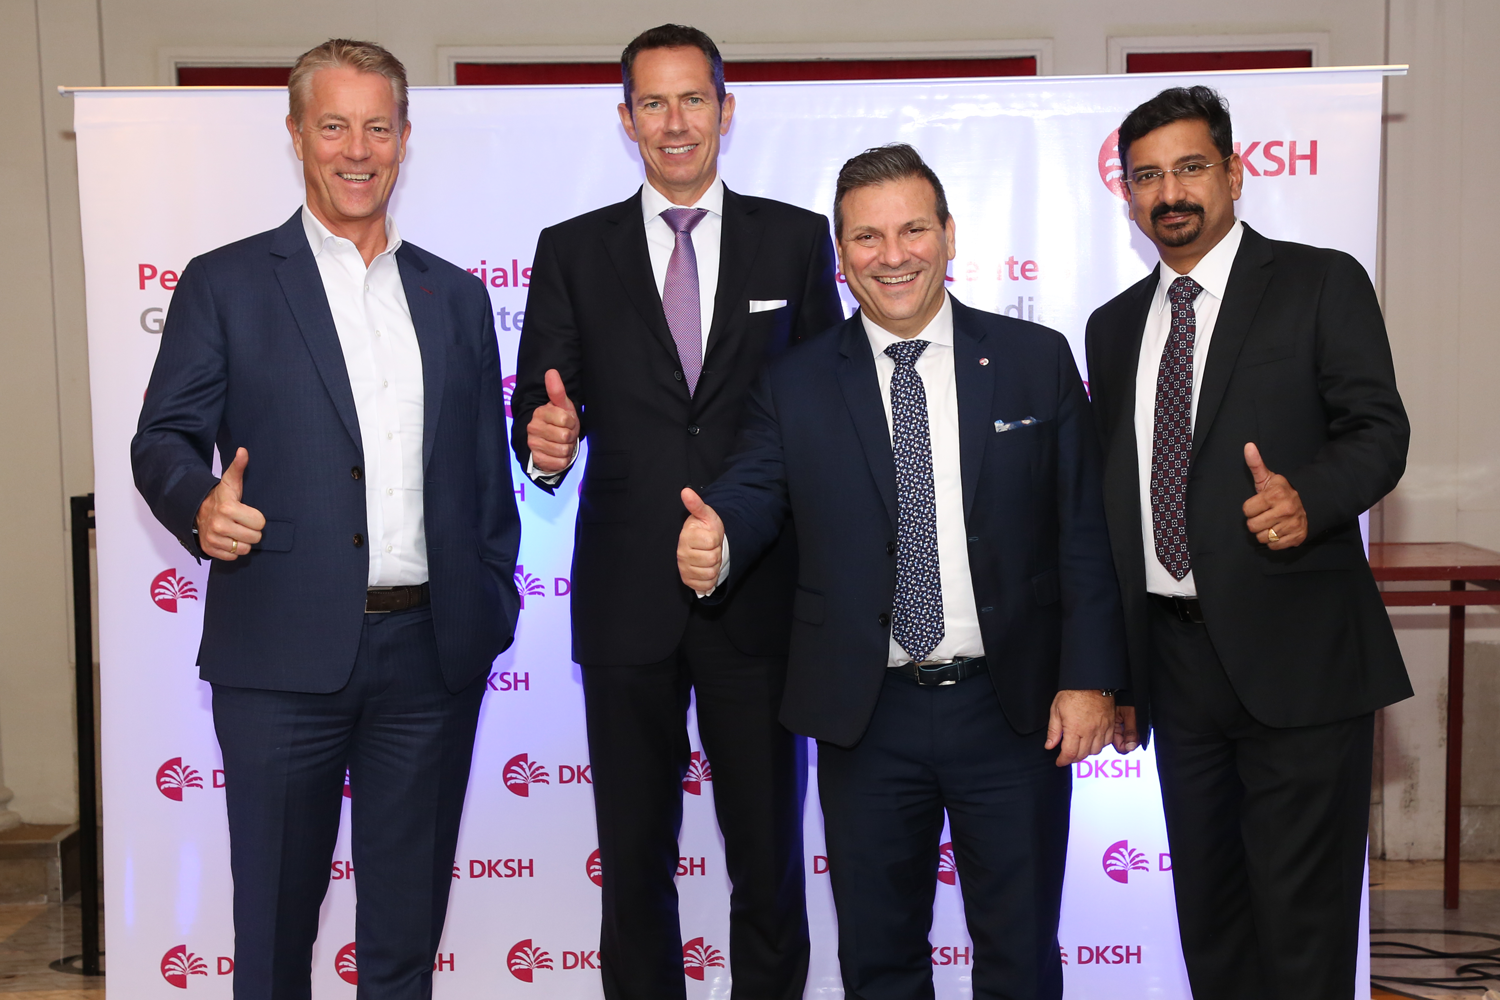 DKSH upgrades innovation centers in India